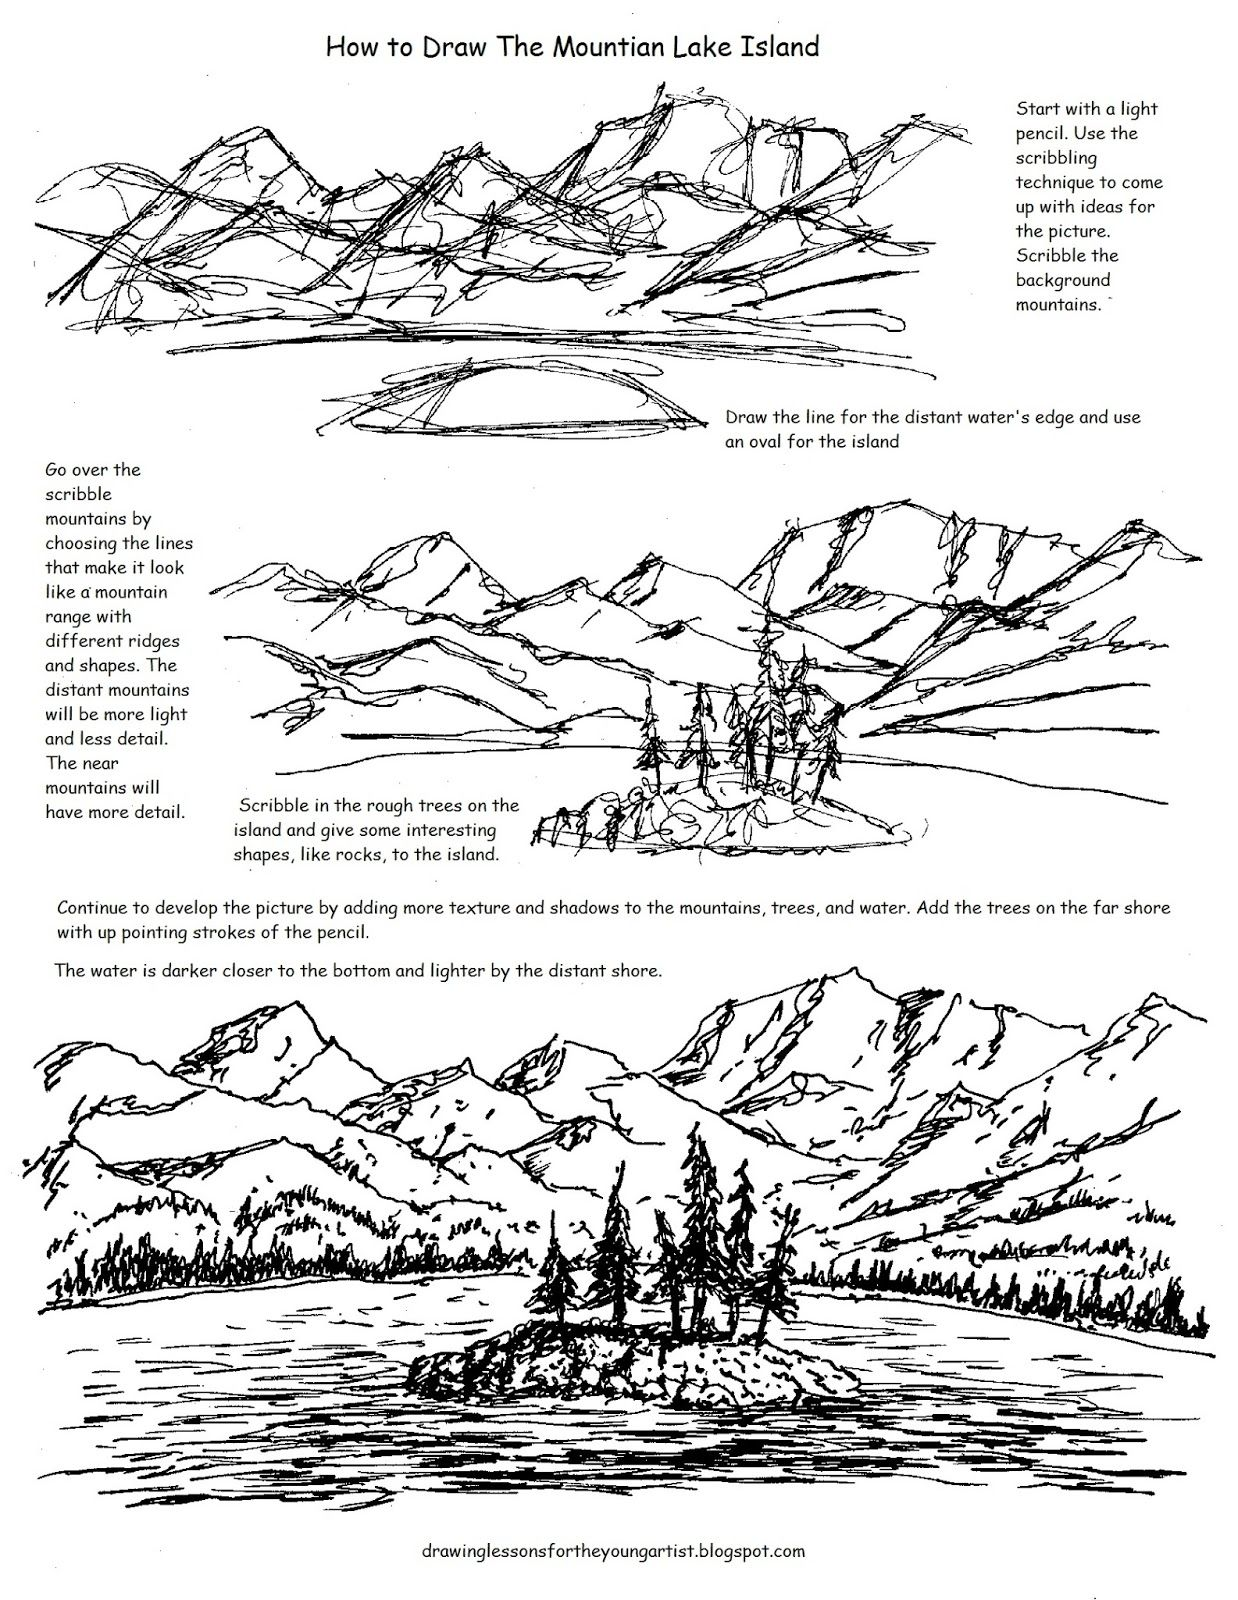 worksheet How To Draw Printable Worksheets easy drawing lessons and worksheets for the beginning artist how to draw young printable worksheet mountain lake with an island in it